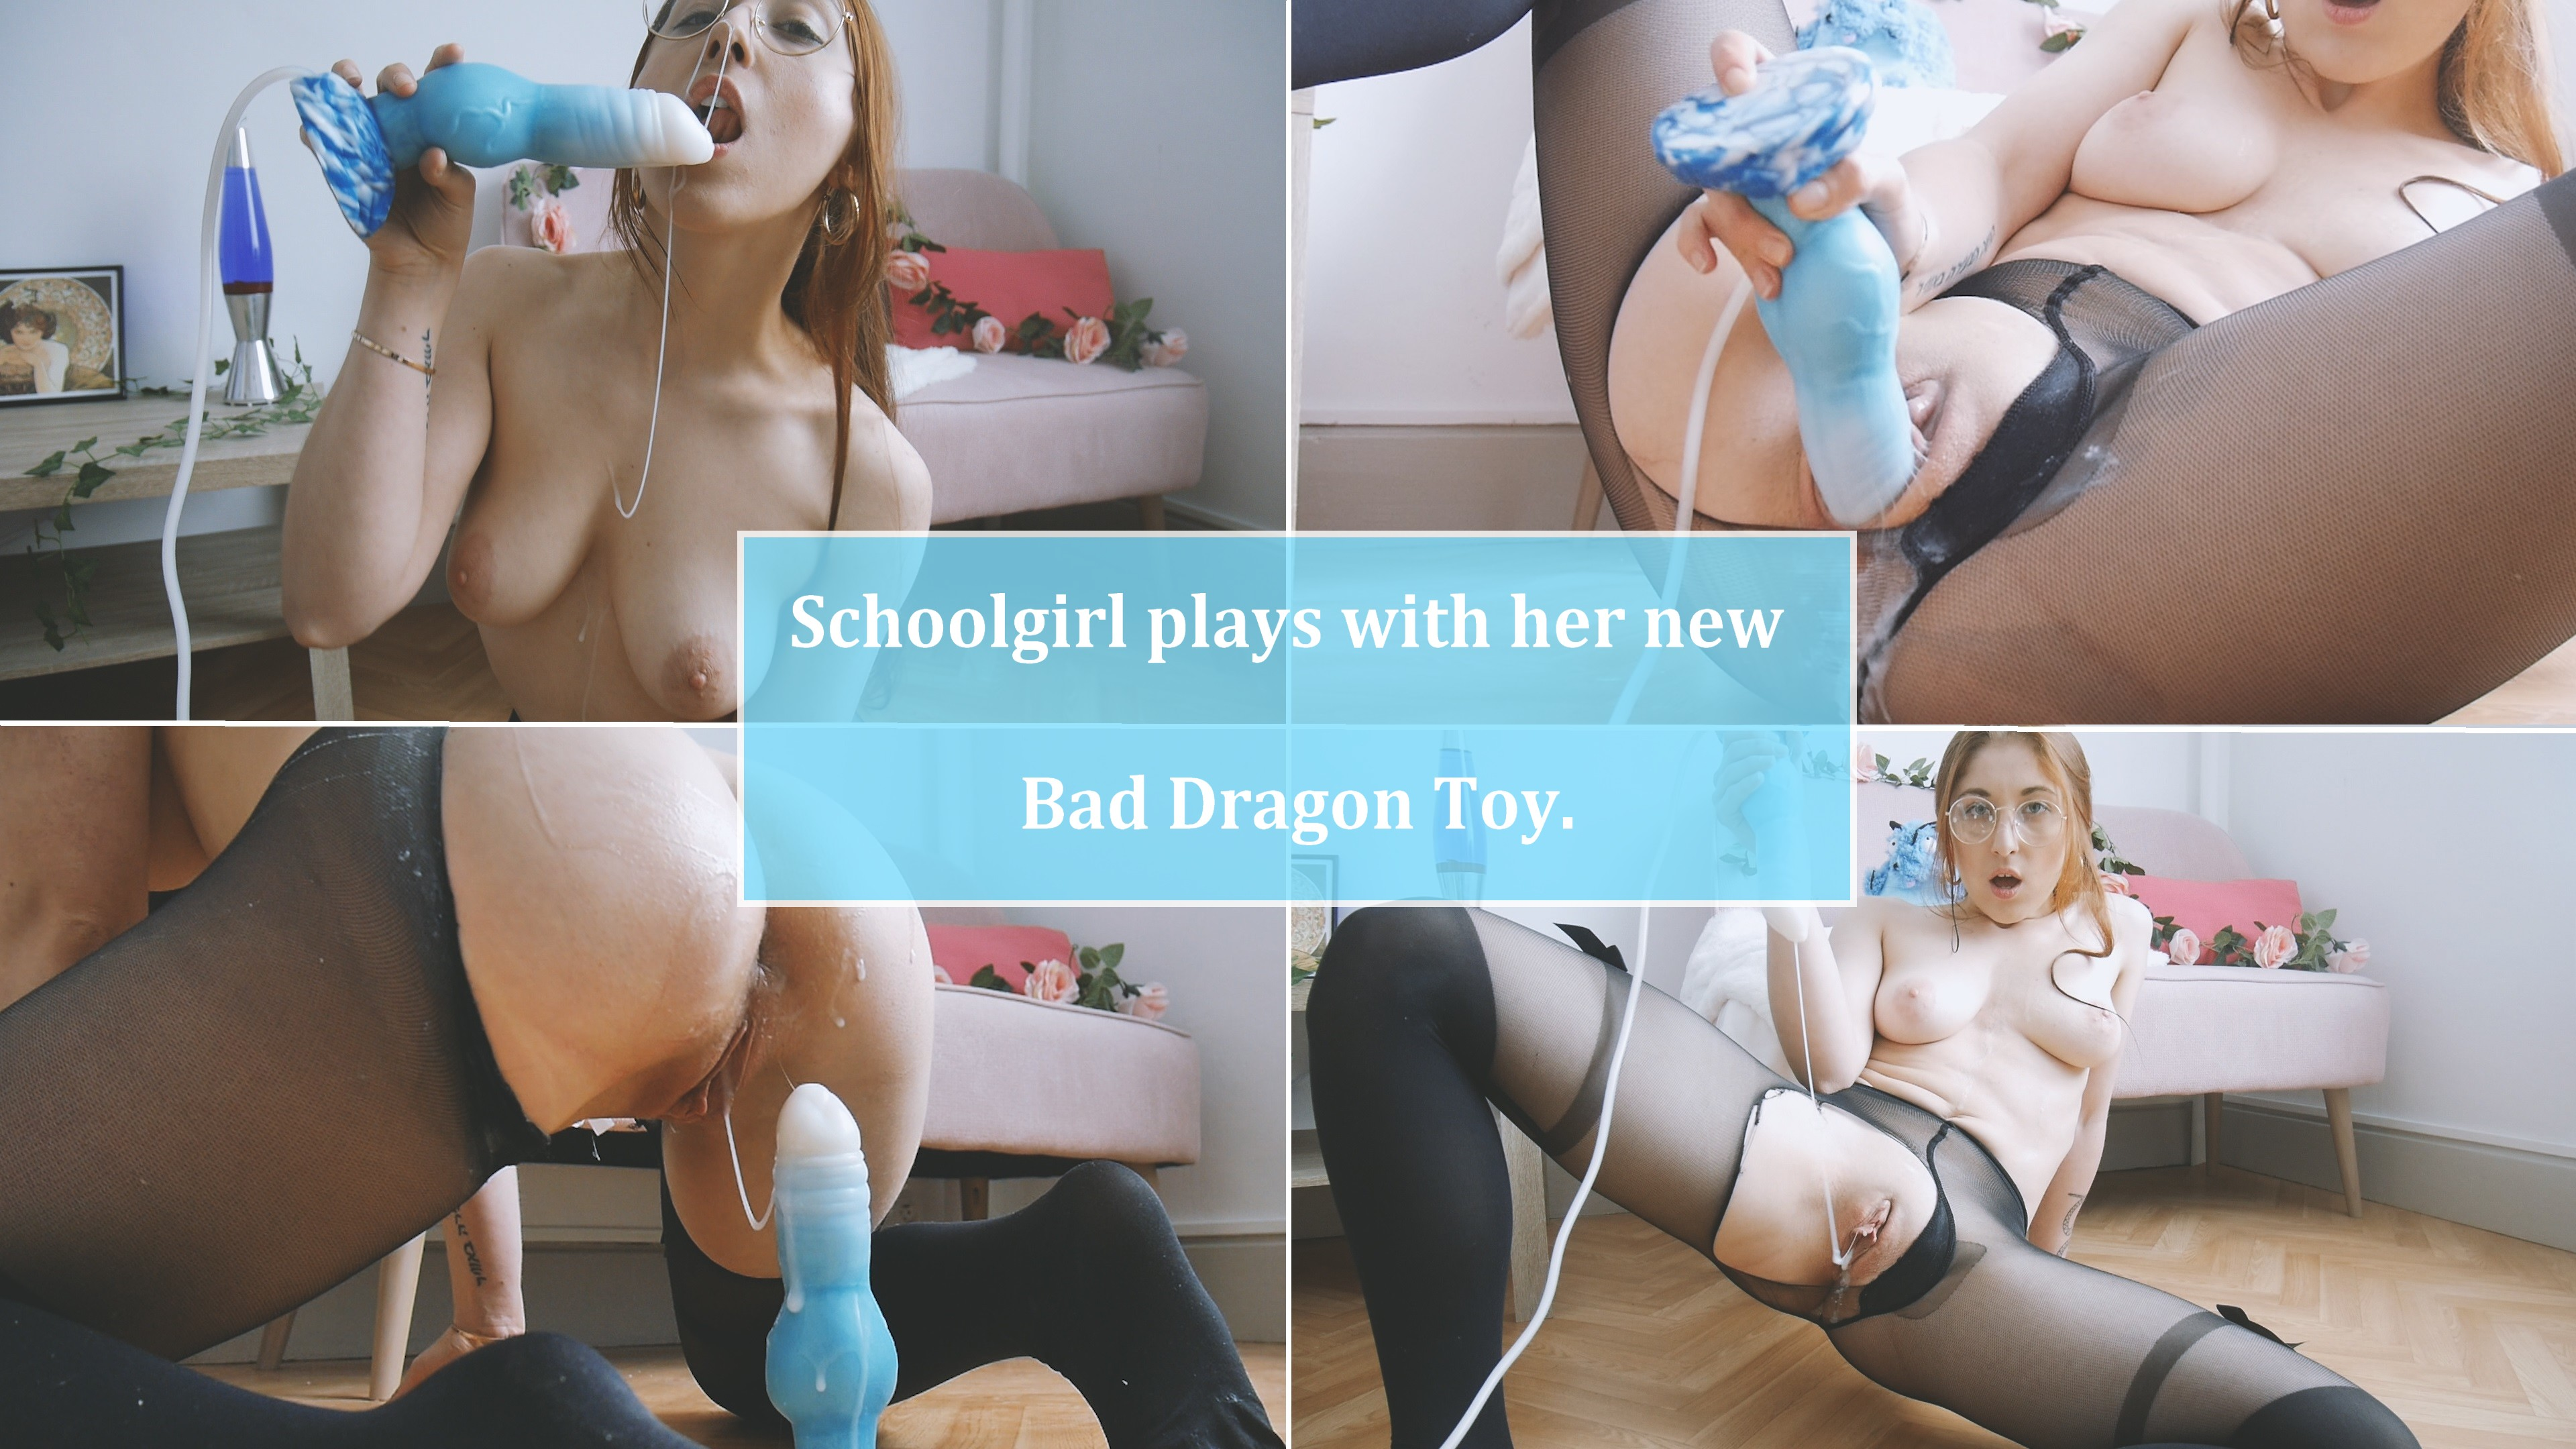 CUMPLAY – Schoolgirl Plays With Her New Bad Dragon